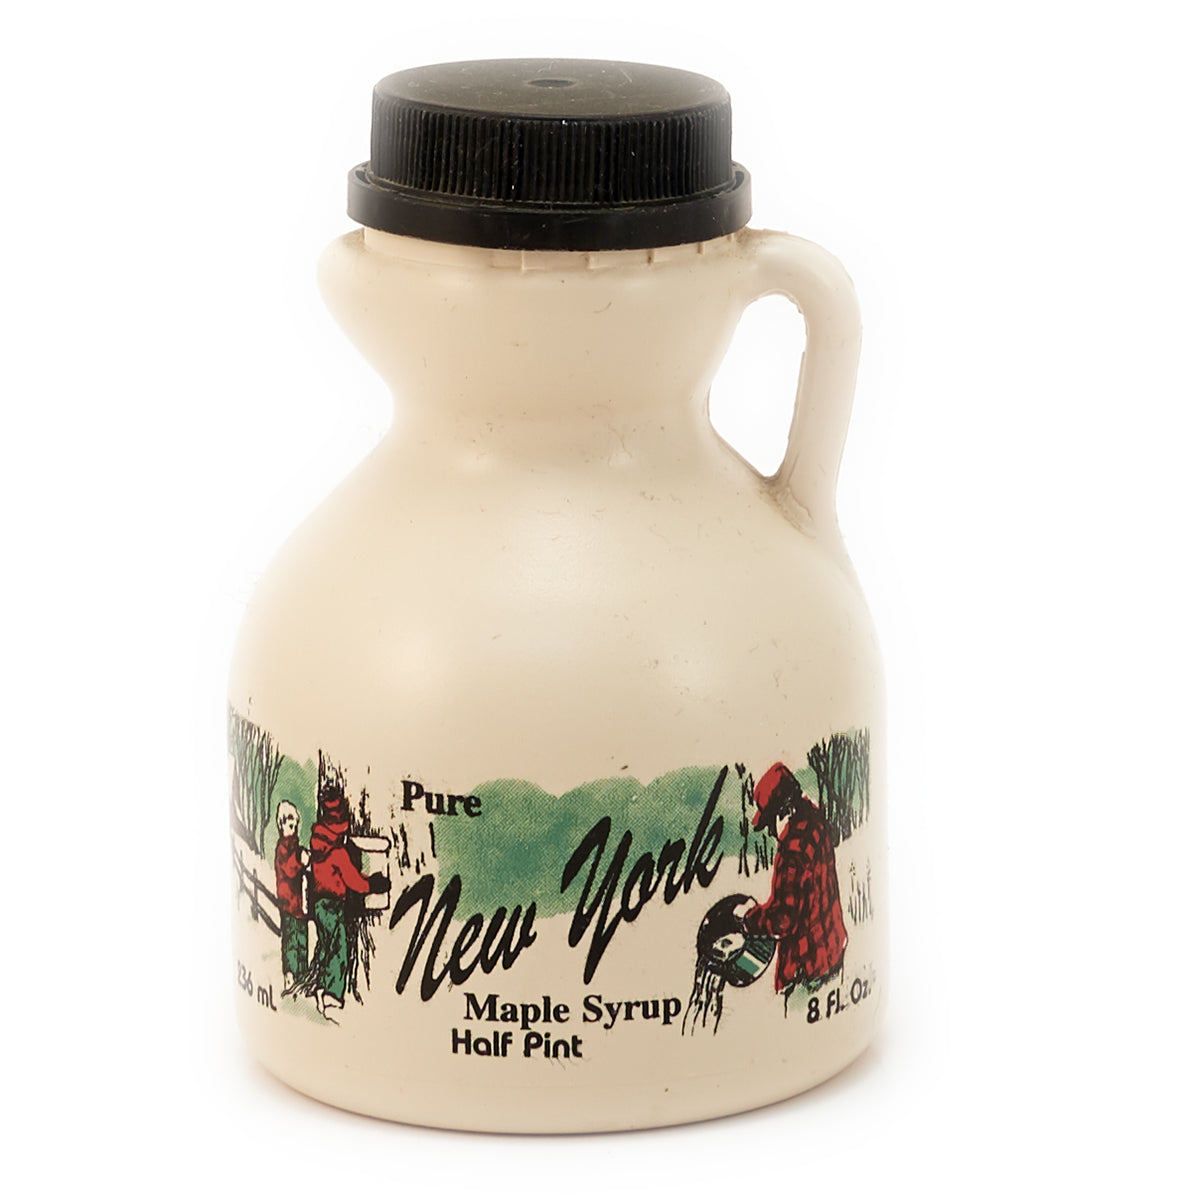 NY 3-Color 8 oz Jug